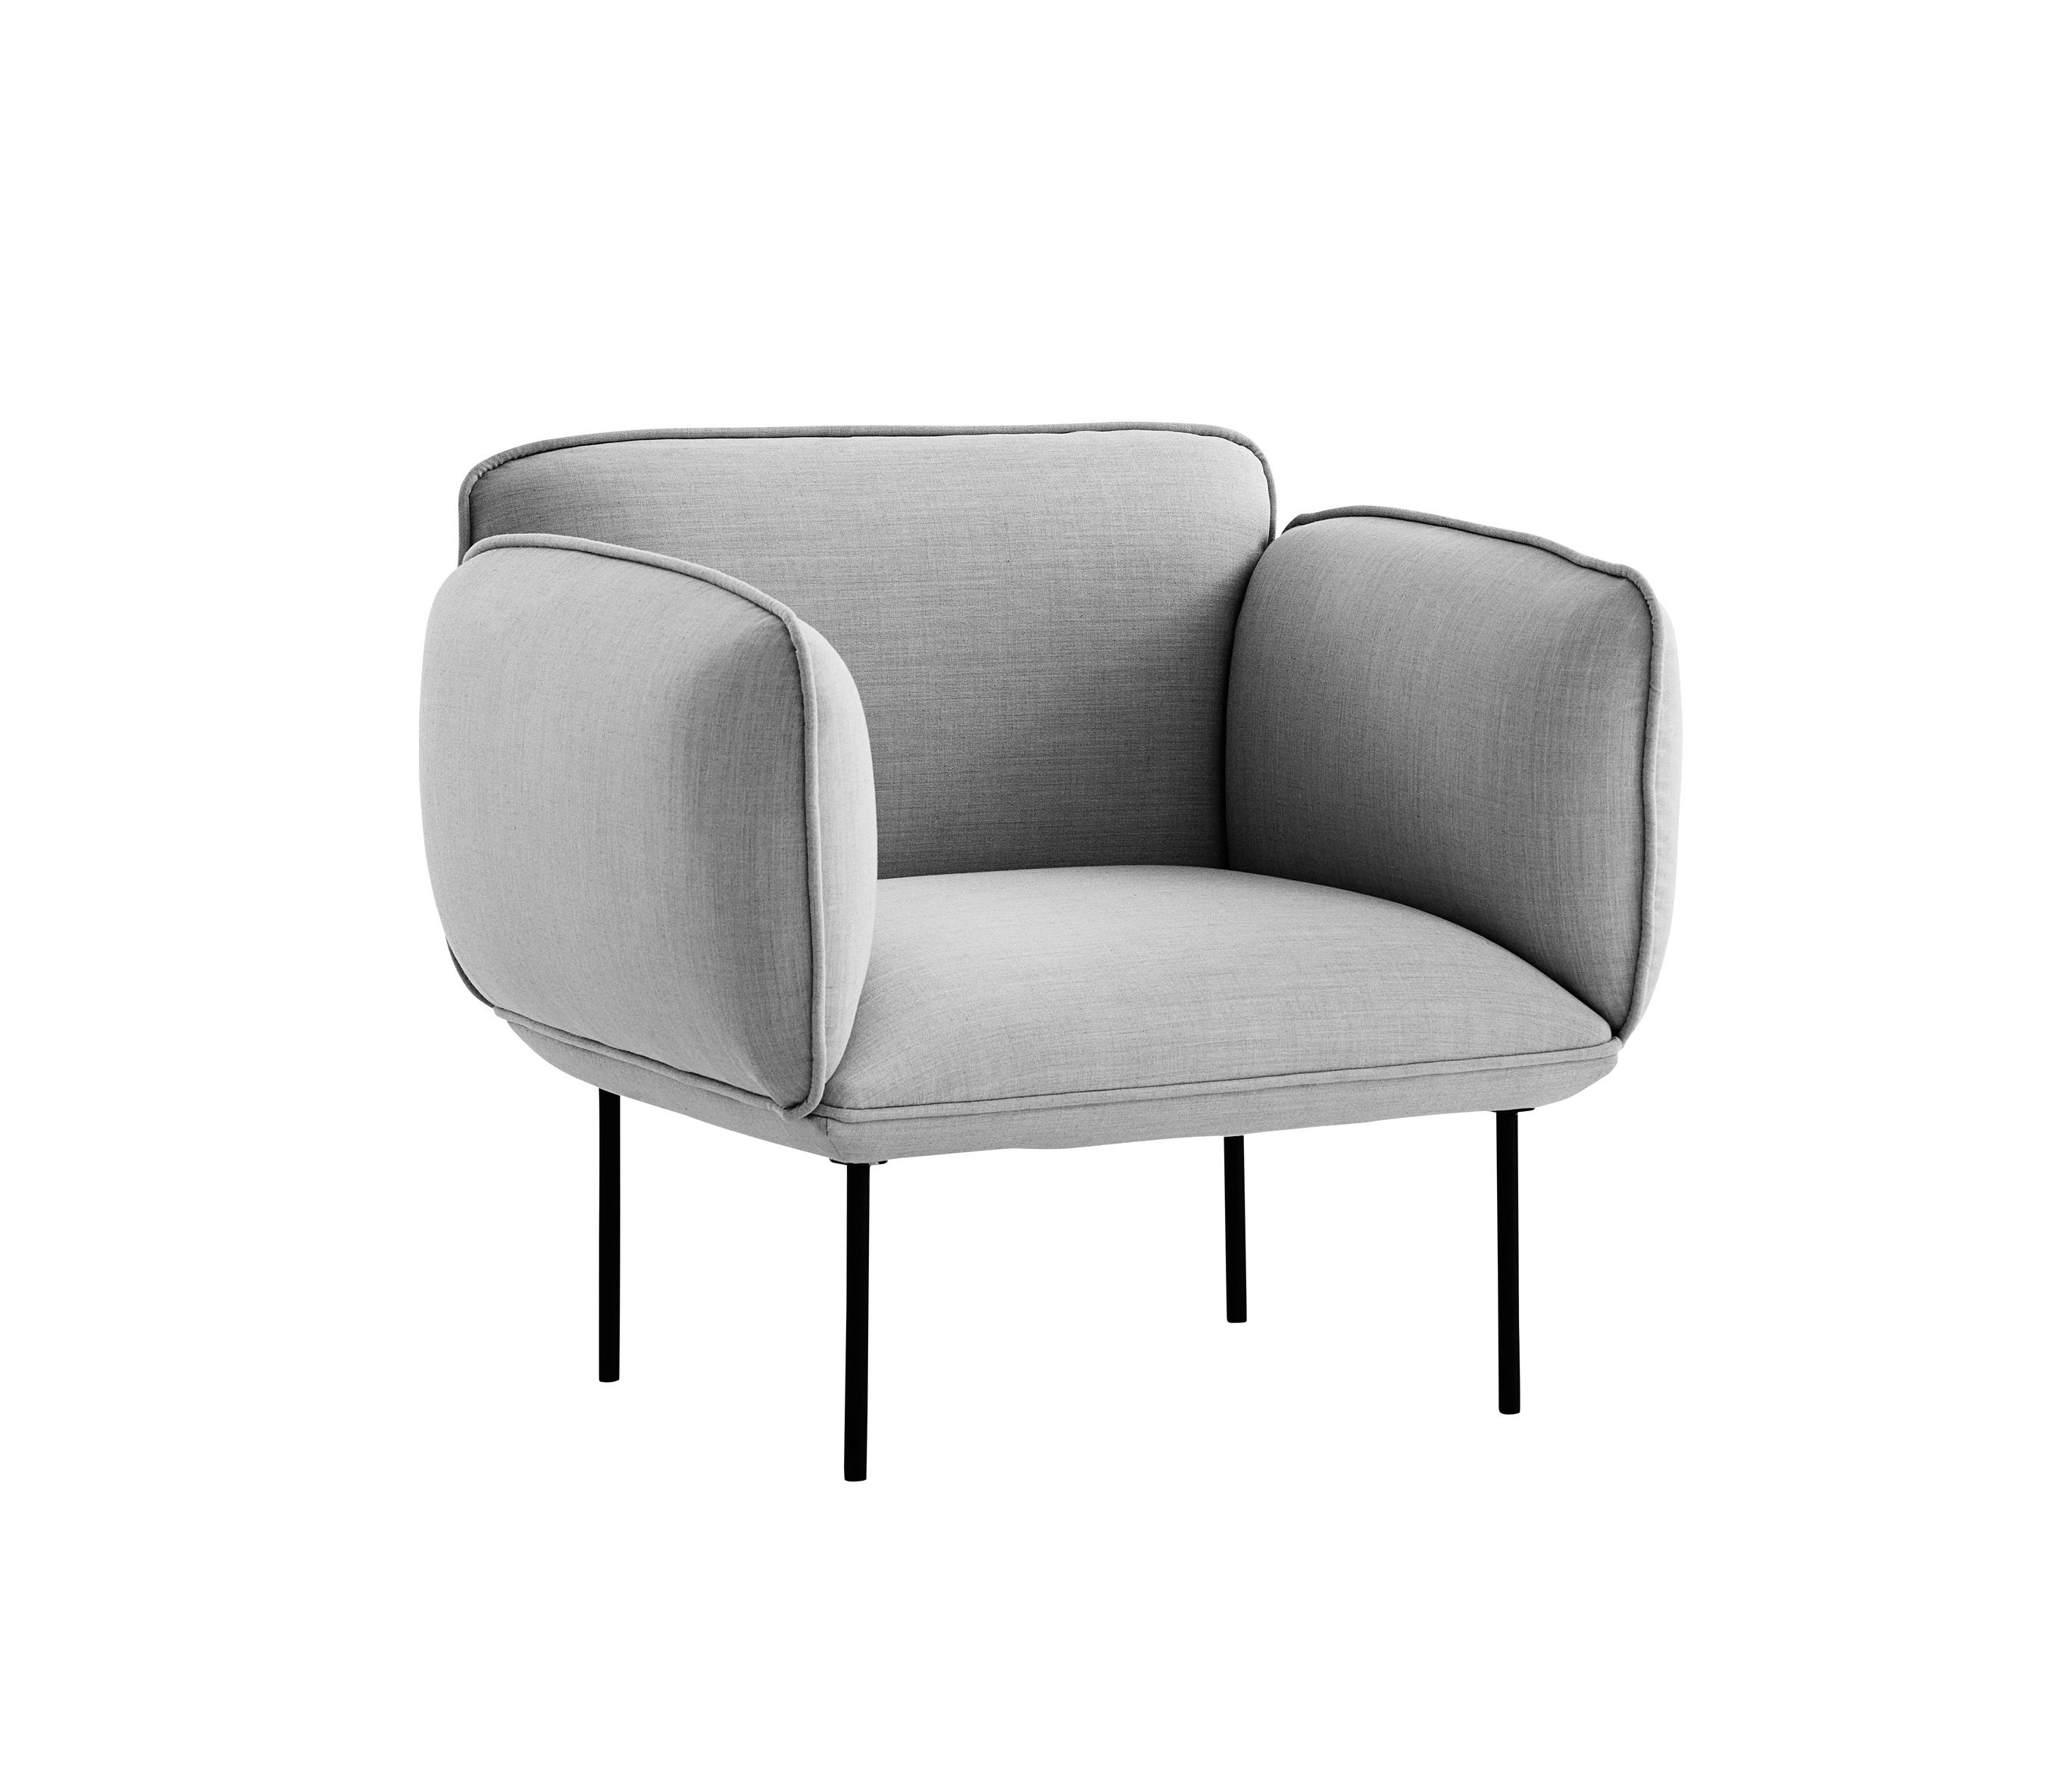 NAKKI 1- SEATER - Armchairs from WOUD | Architonic